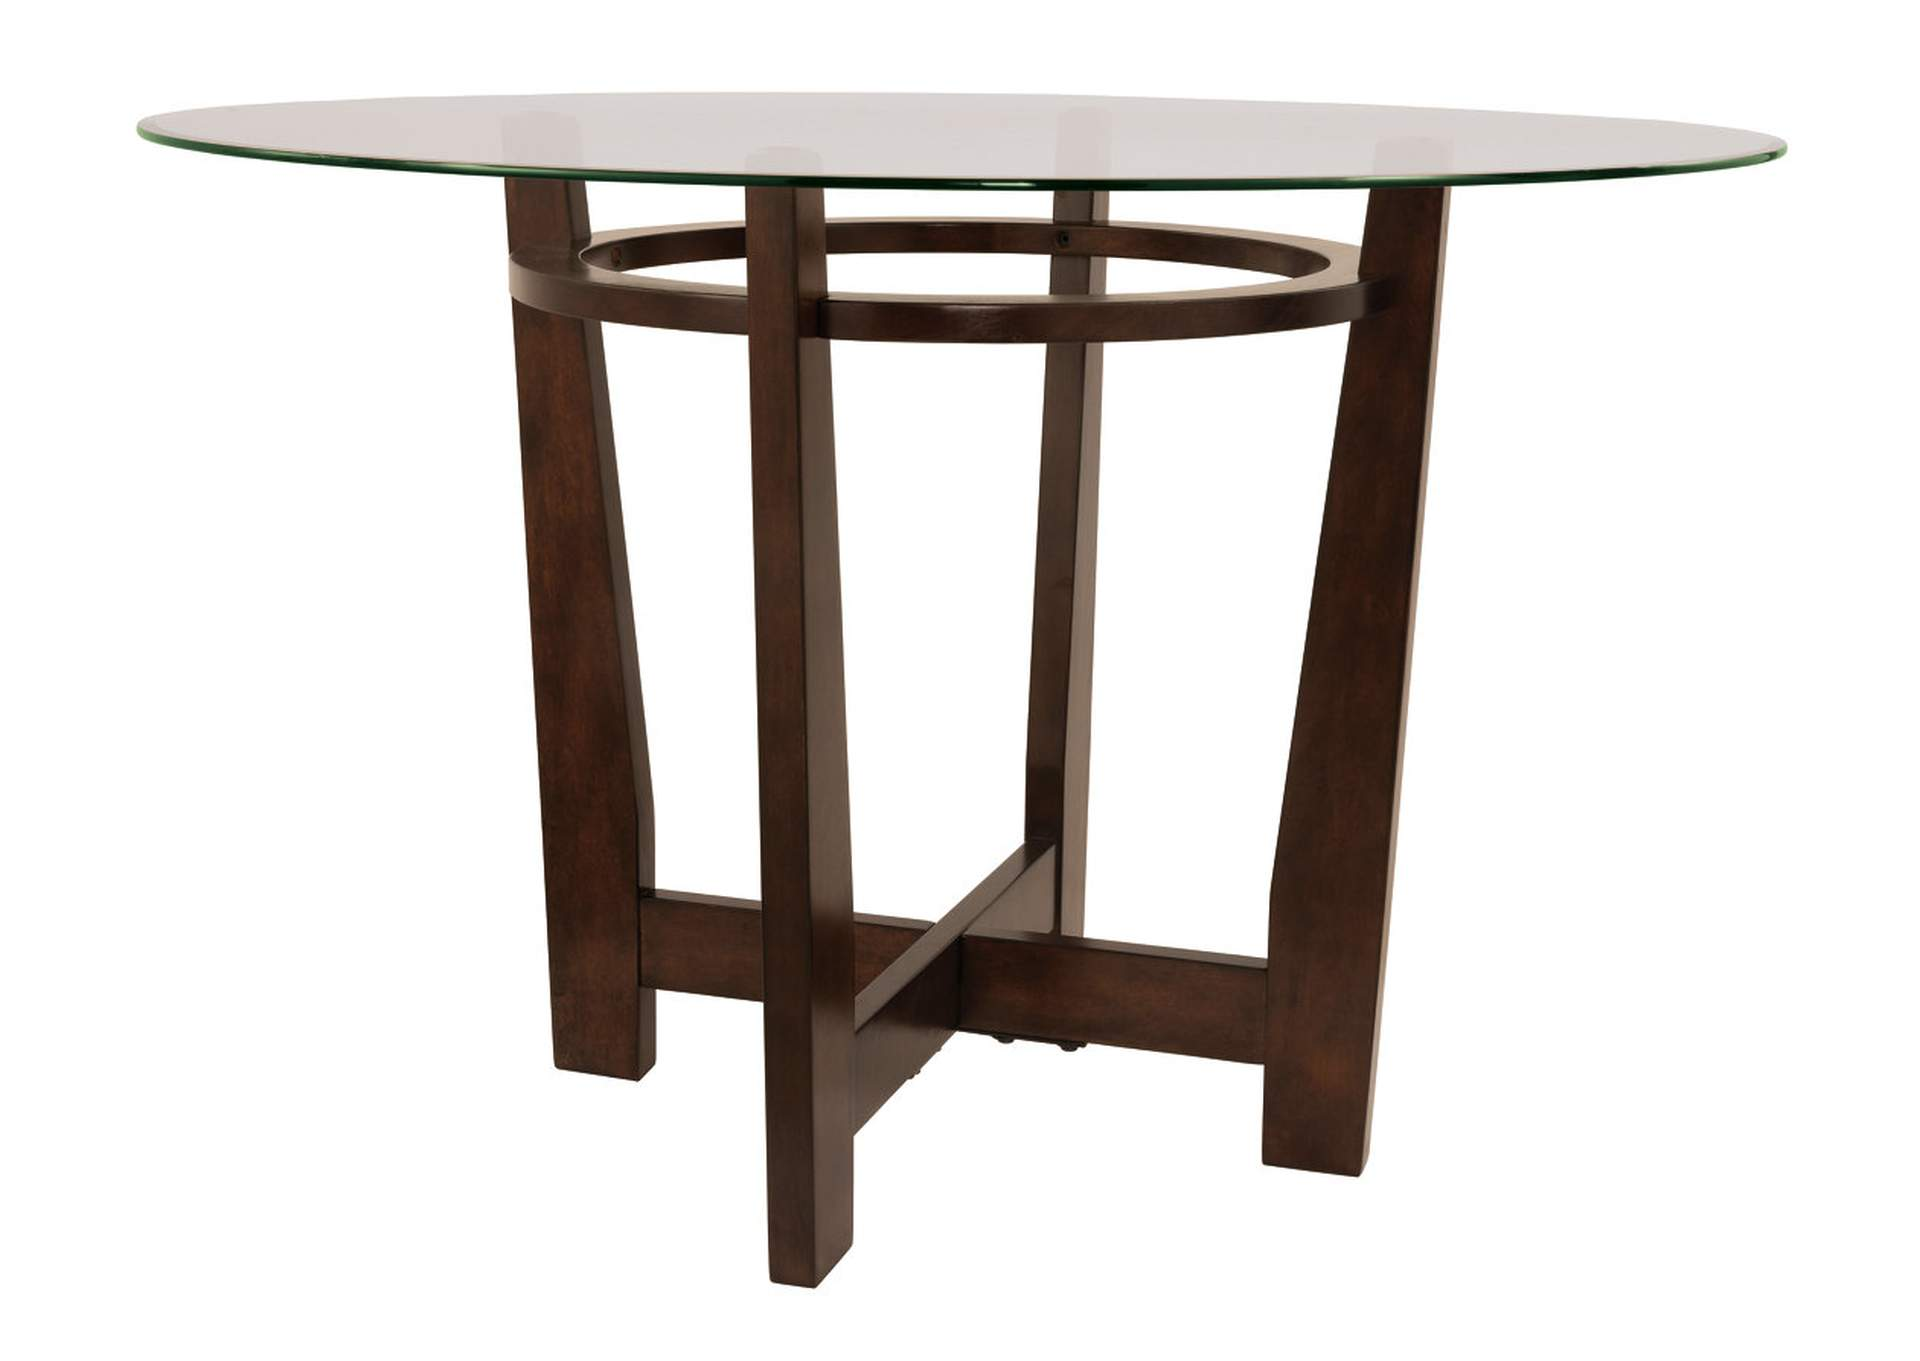 Charell Round Dining Table,Signature Design By Ashley